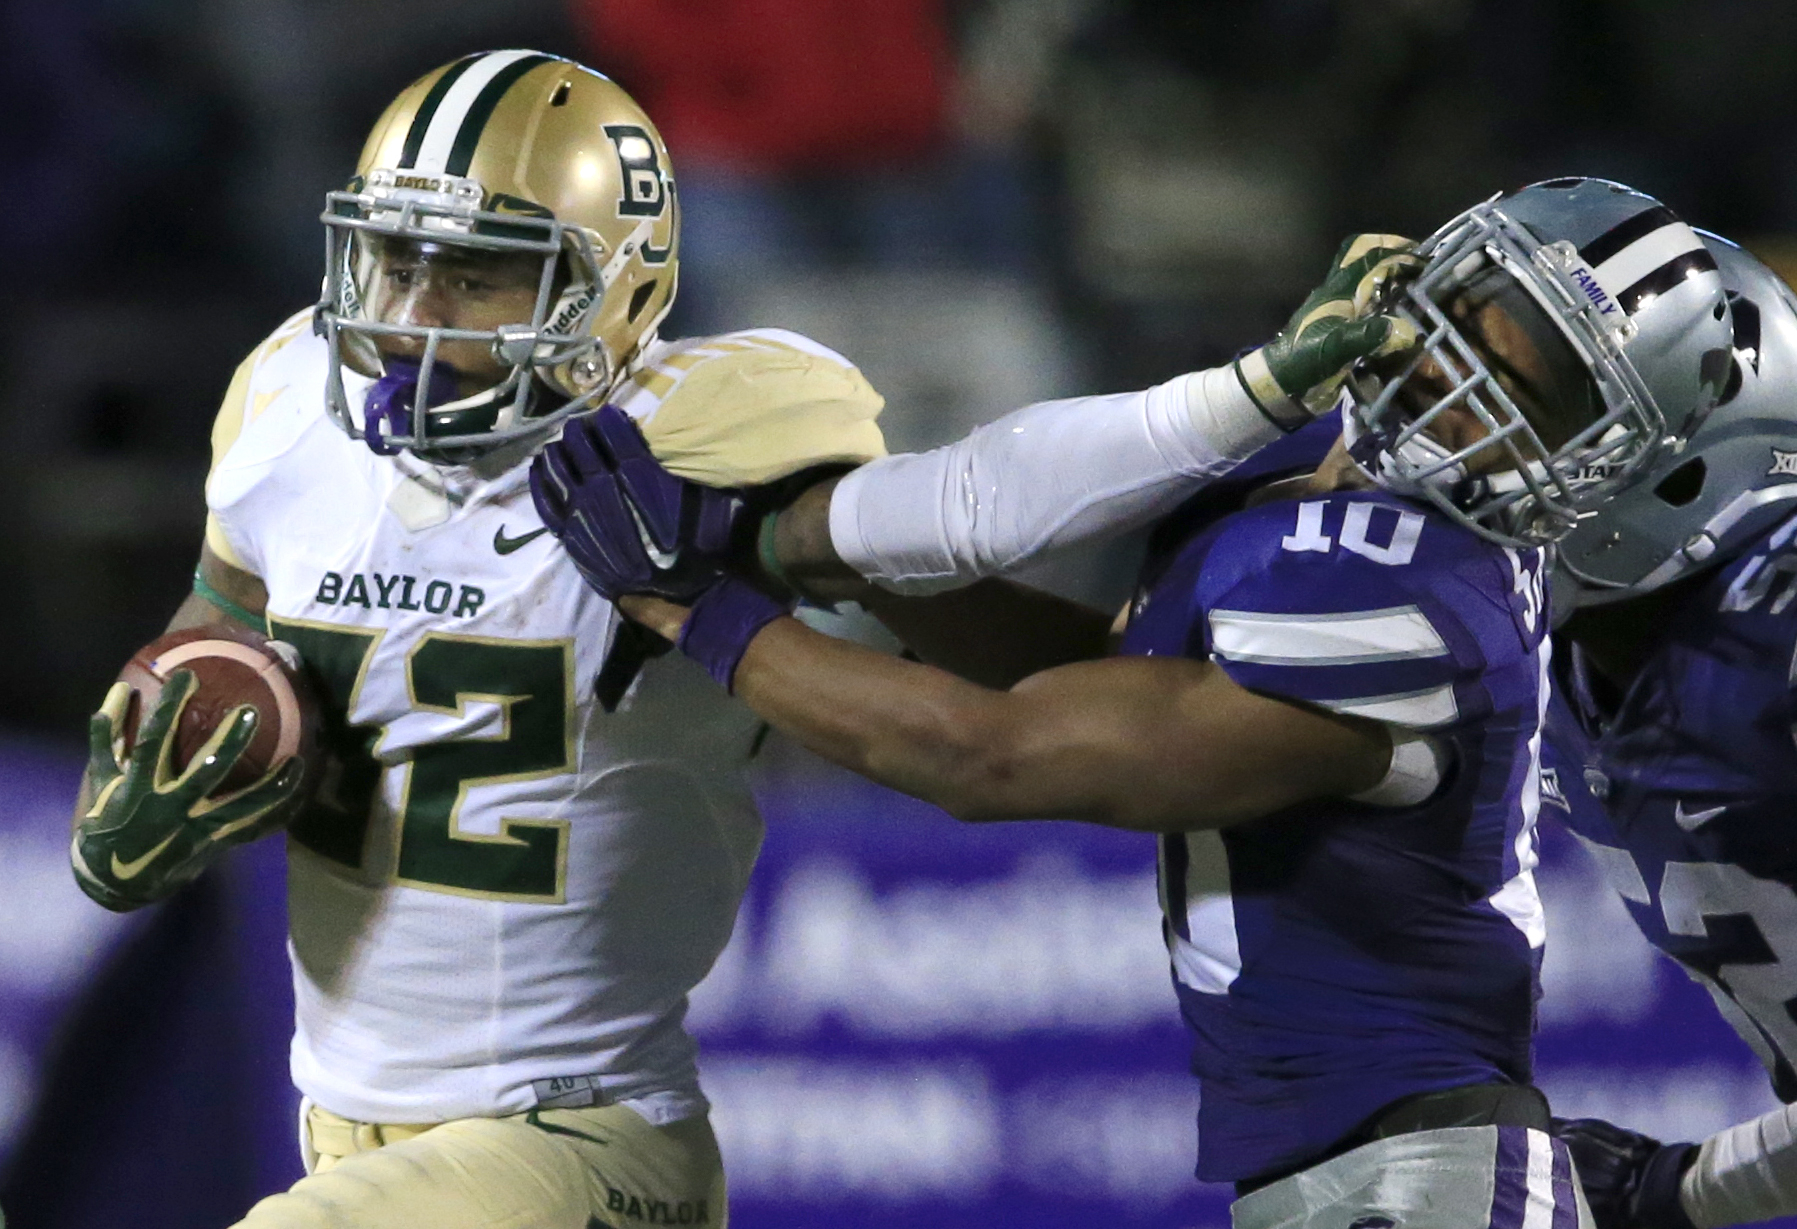 Baylor running back Shock Linwood (32) stiff-arms Kansas State defensive back Donnie Starks (10) during the second half of an NCAA college football game in Manhattan, Kan., Thursday, Nov. 5, 2015. Baylor defeated Kansas State 31-24. (AP Photo/Orlin Wagner